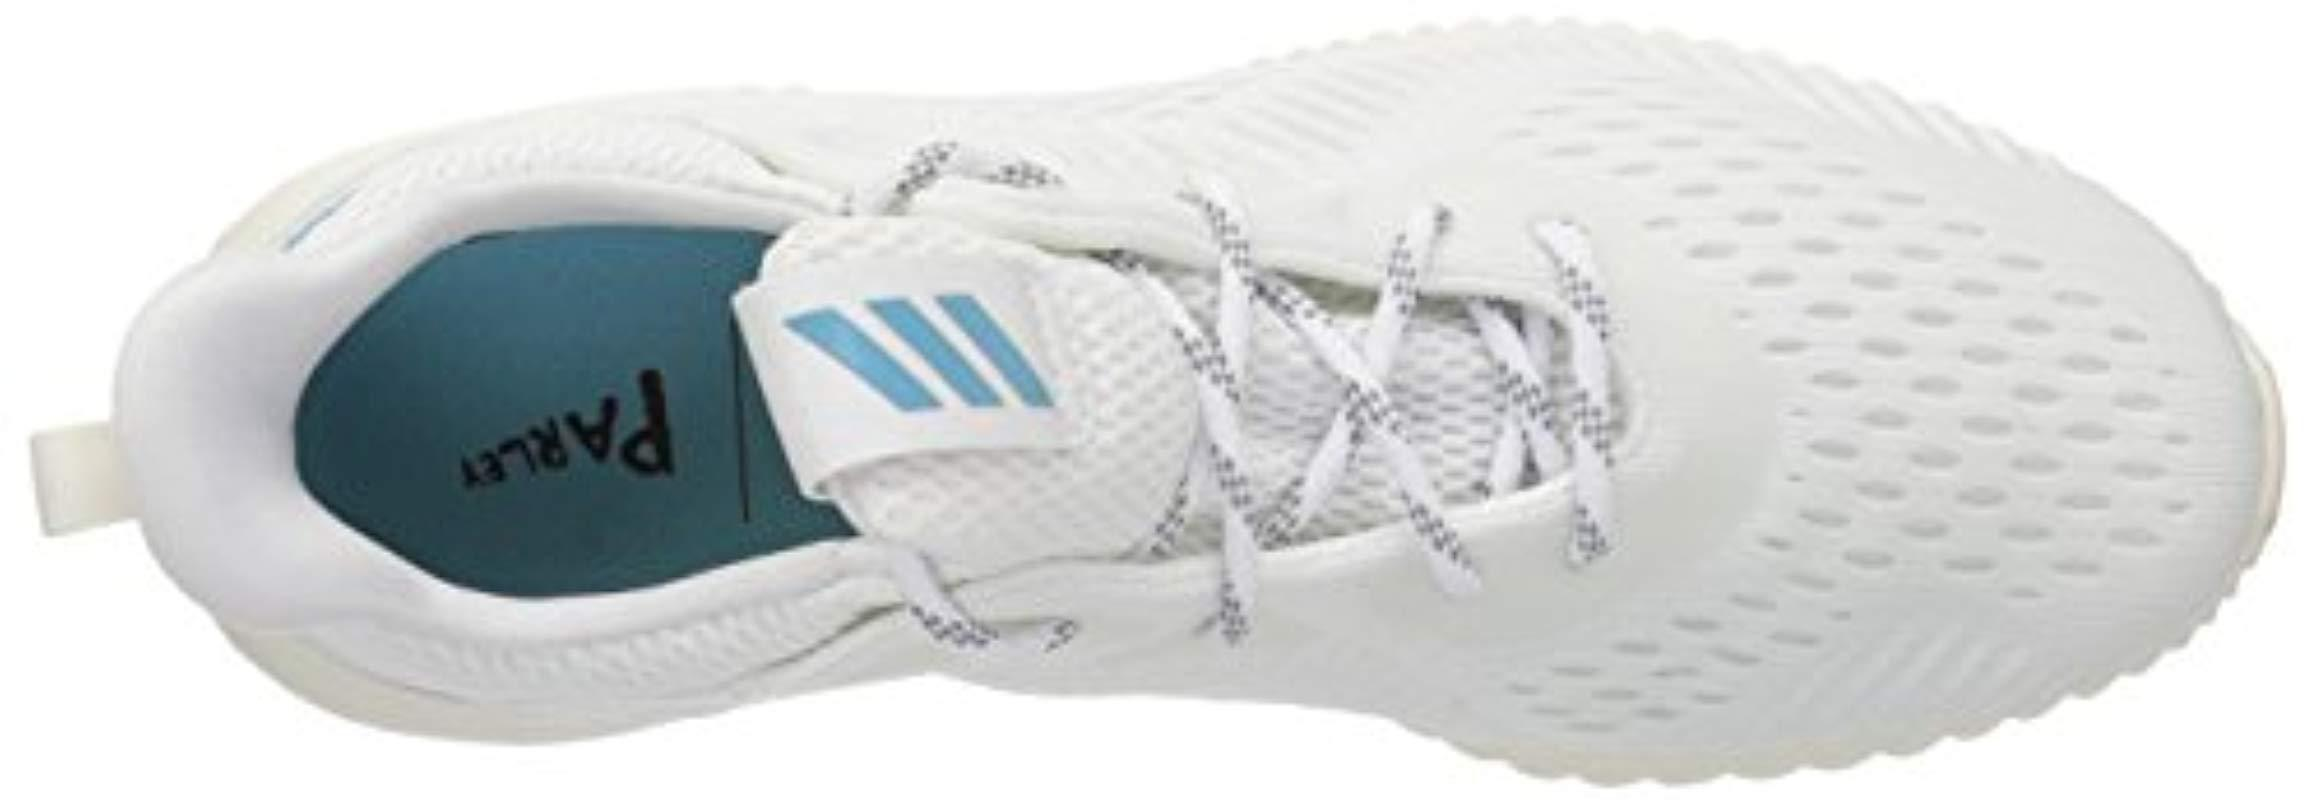 631aa2f4ef7ba Adidas - White Alphabounce 1 Parley W Running Shoe - Lyst. View fullscreen